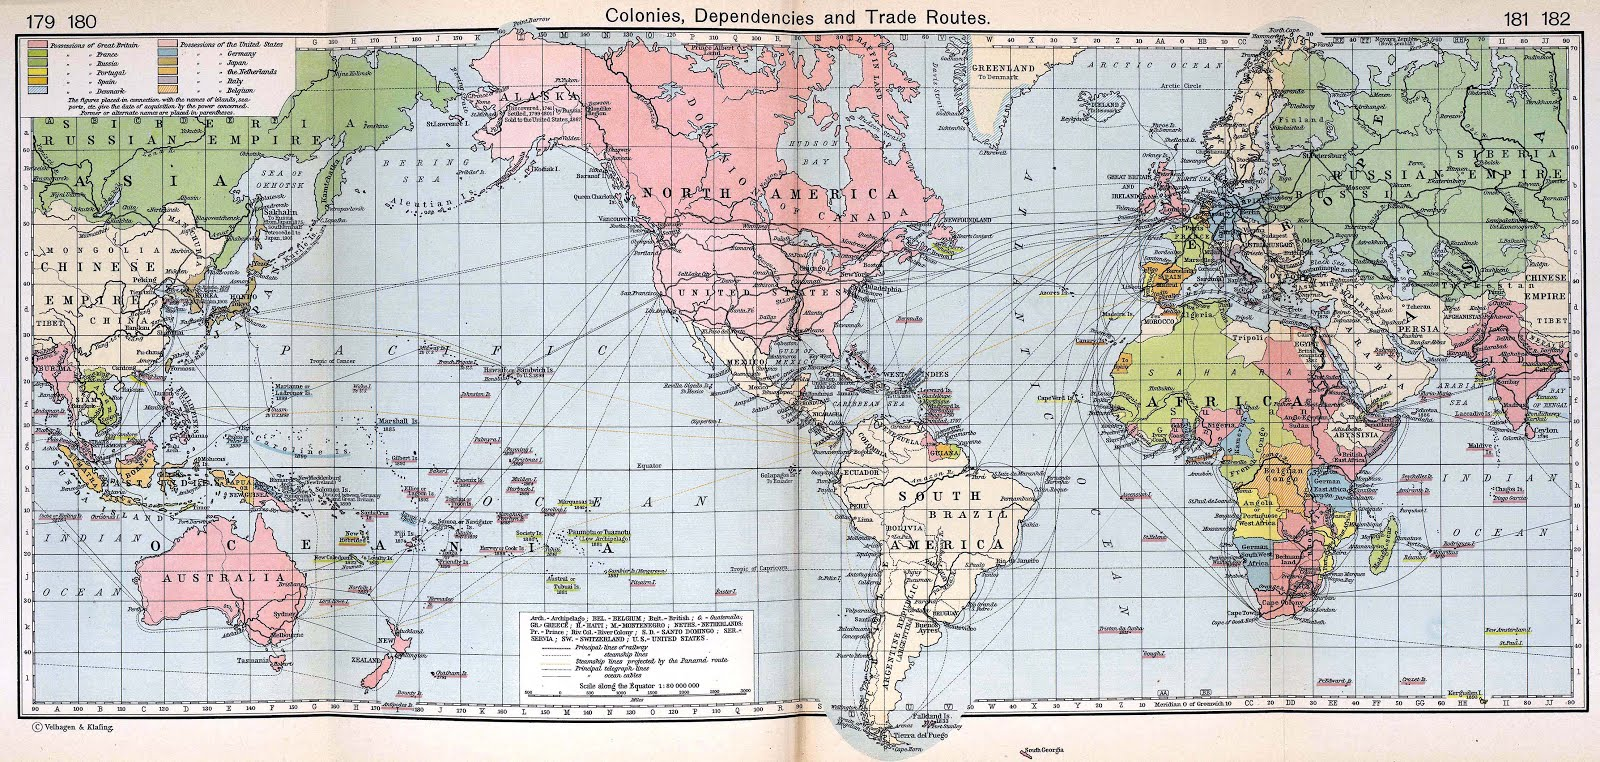 found on the map a map of the world was provided along with paper cut outs of the ss orteric